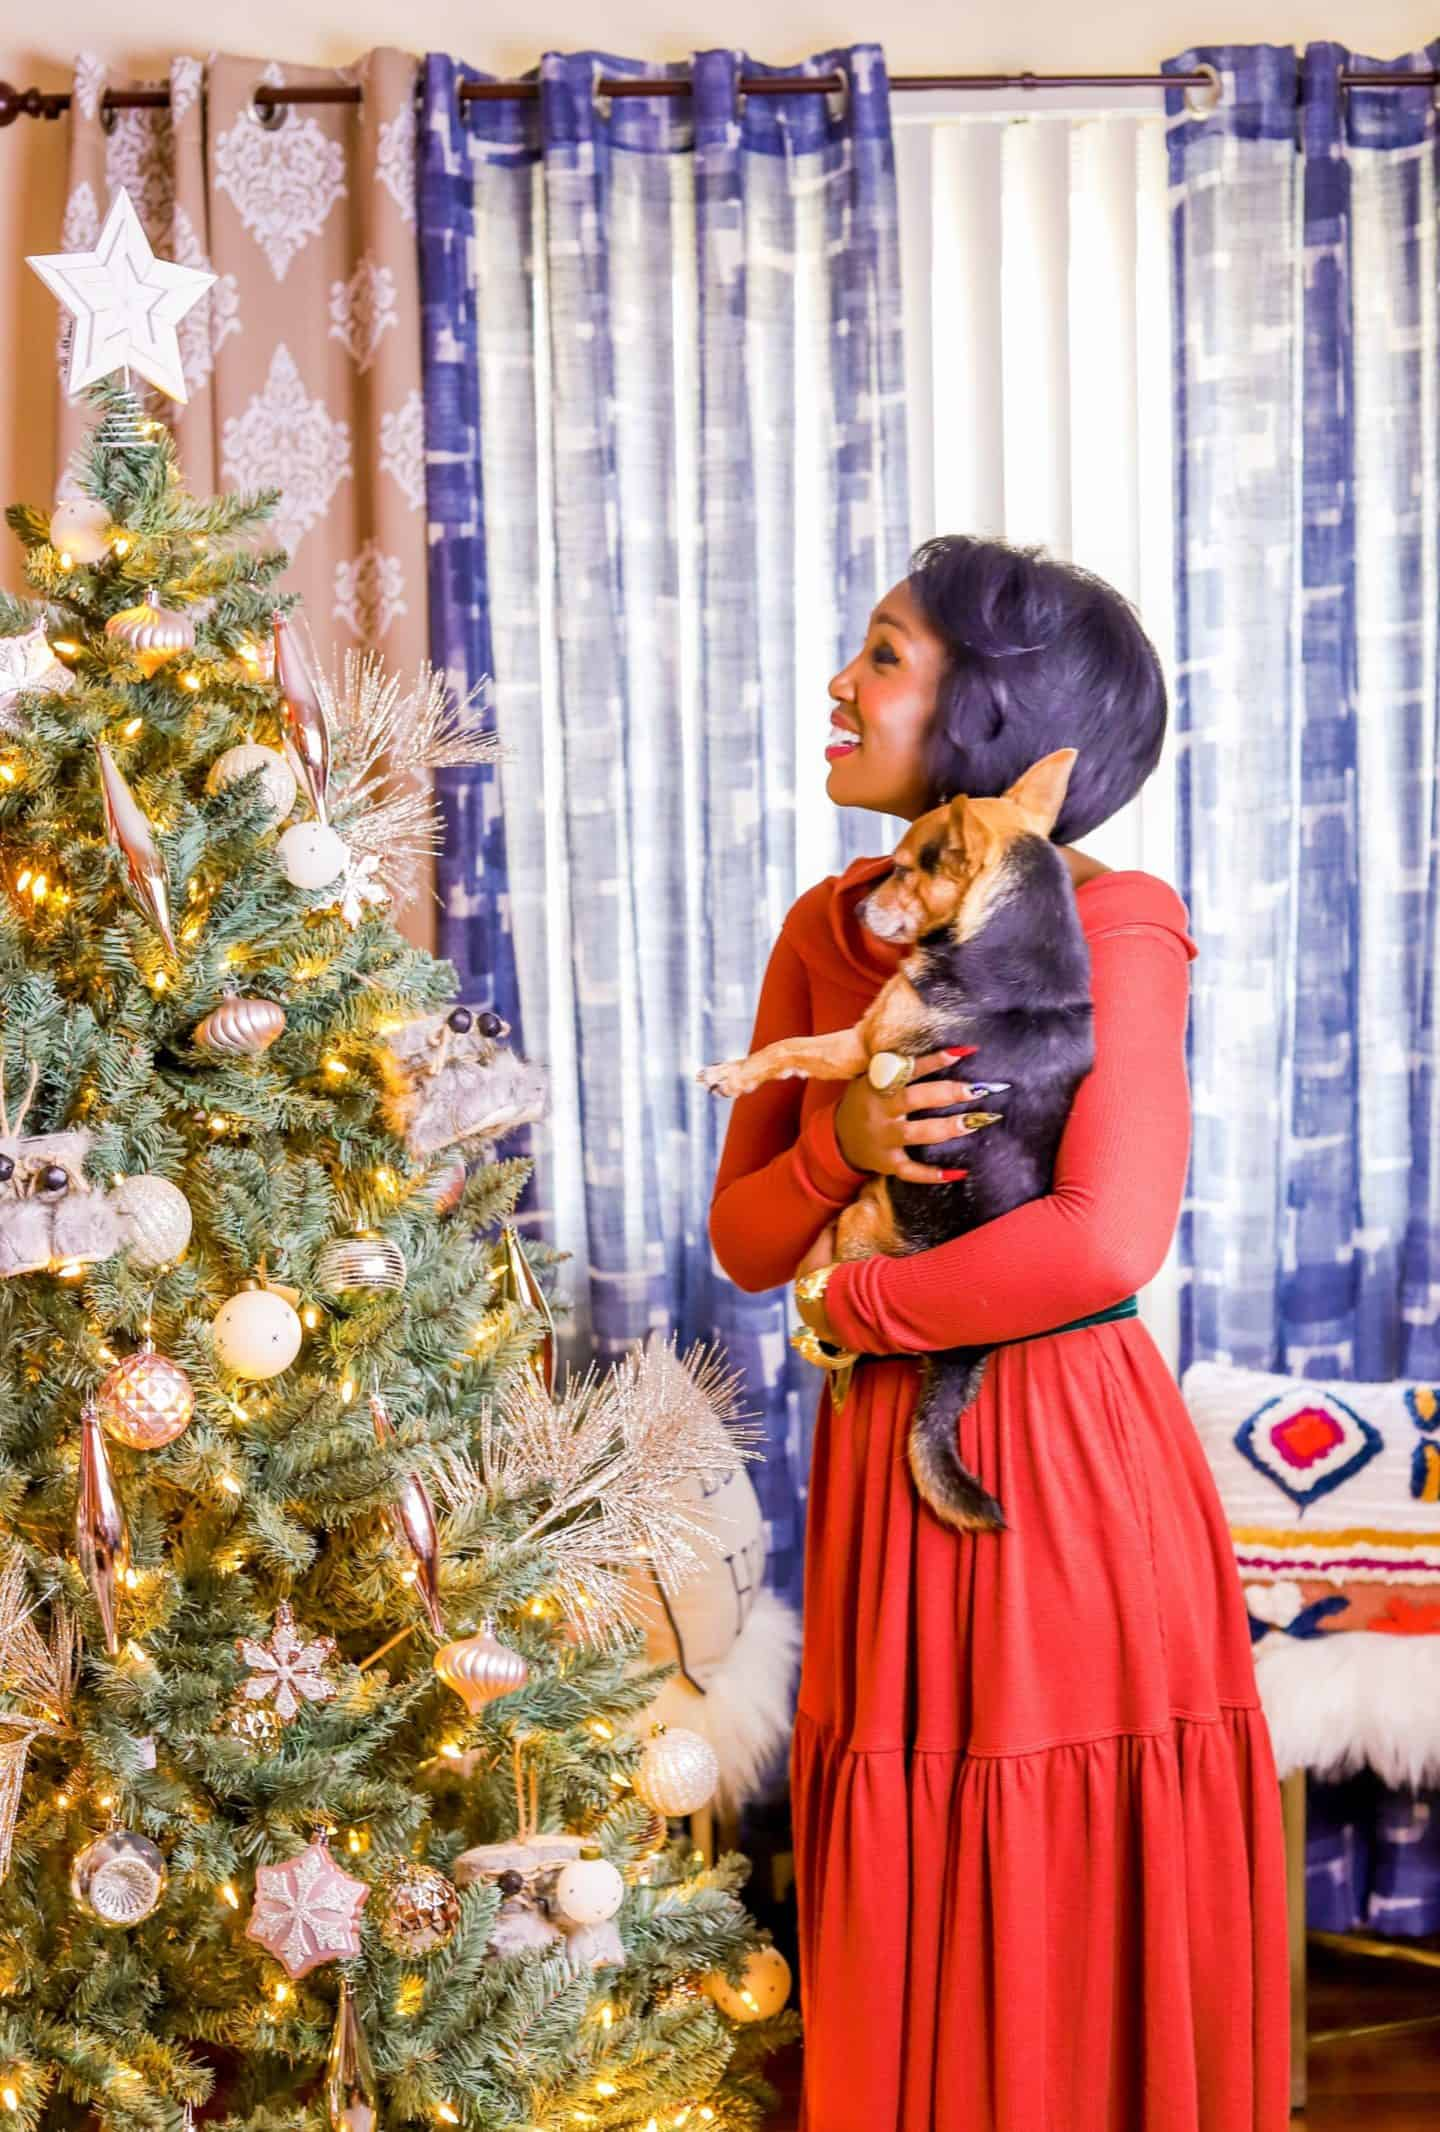 We're Just Going To Sparkle All Day— That's It! With King of Christmas | Shaunda Necole